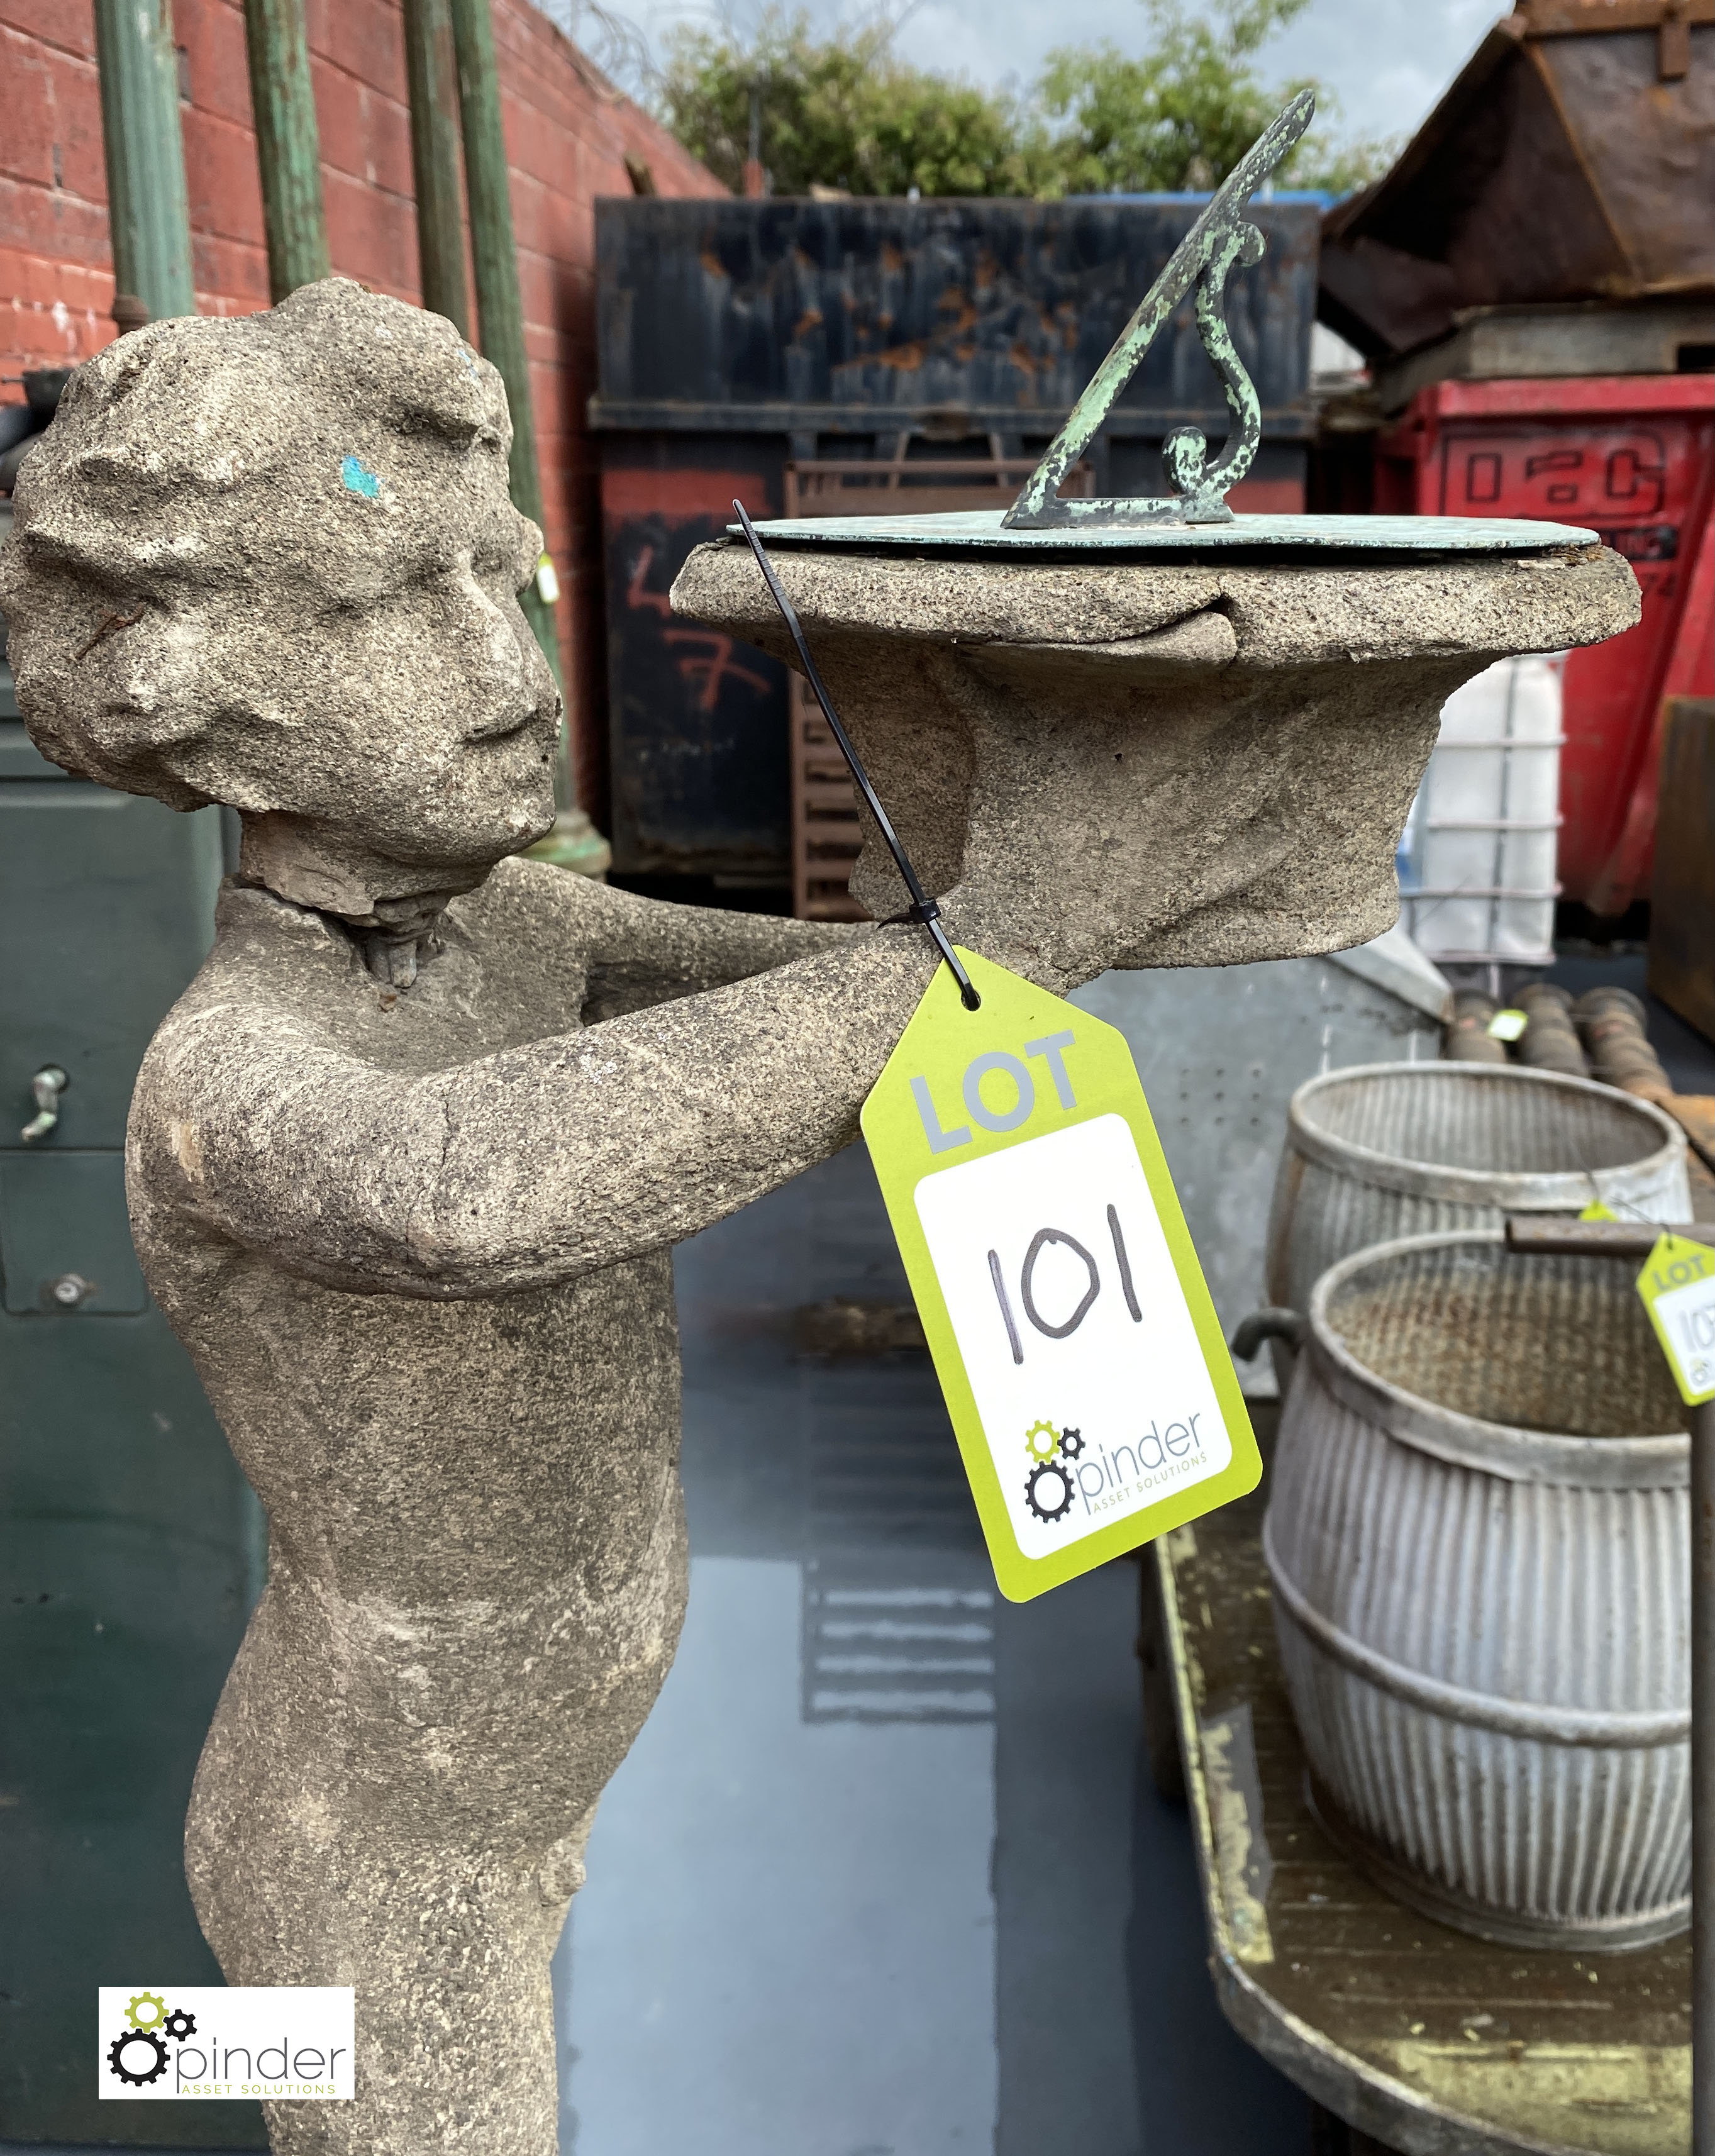 Stone Figure of young boy holding sundial, 890mm tall, on stone base, 540mm tall x 315mm x 315mm, - Image 5 of 12